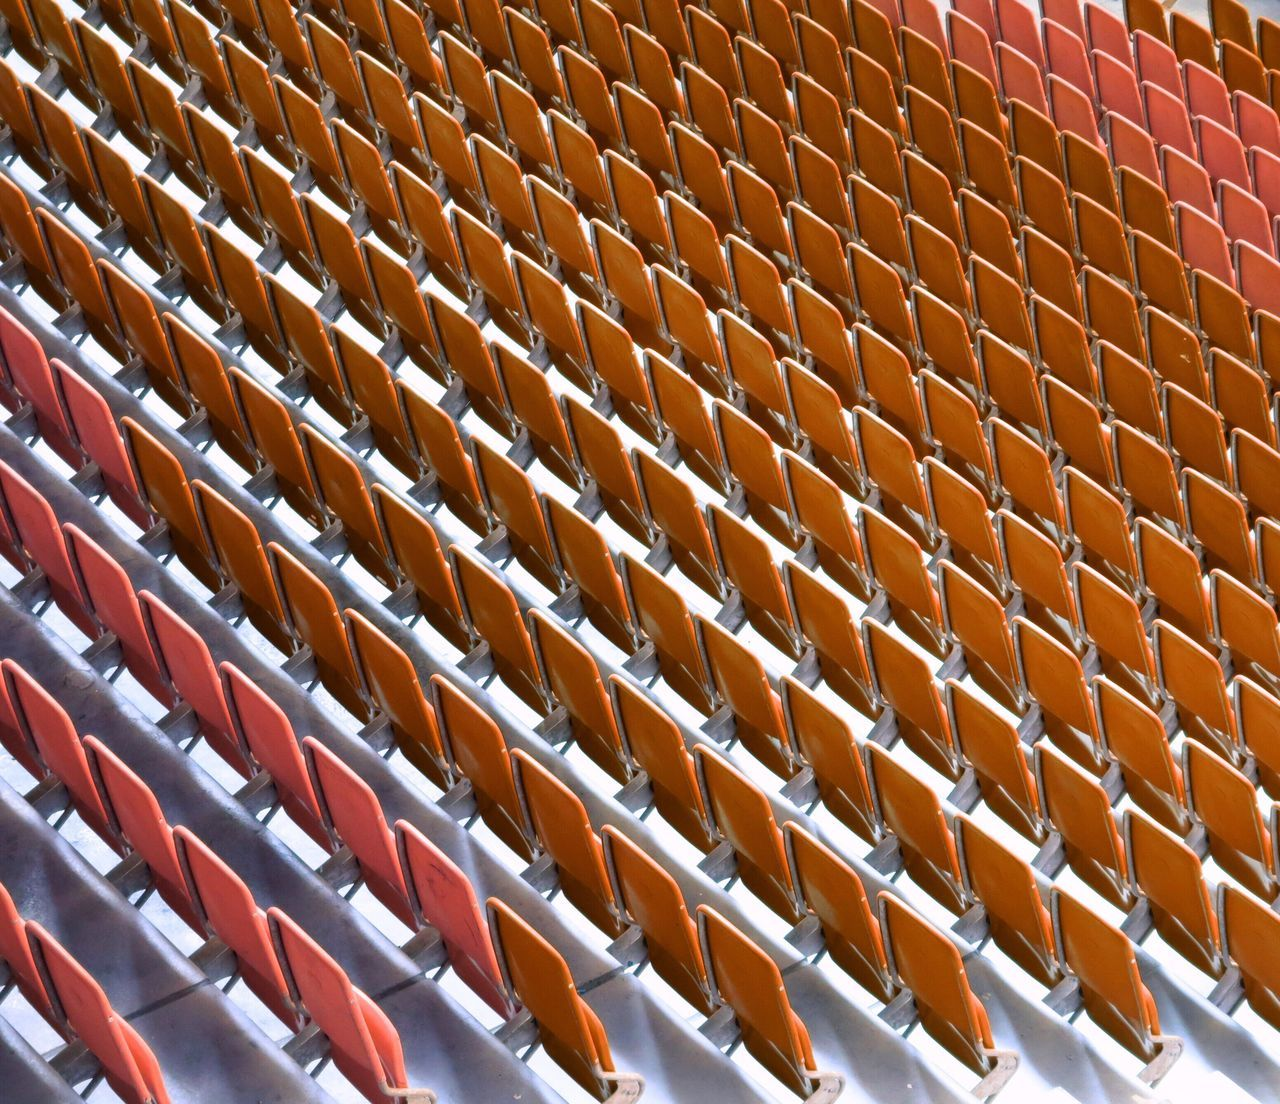 High Angle View Of Seats In Stadium